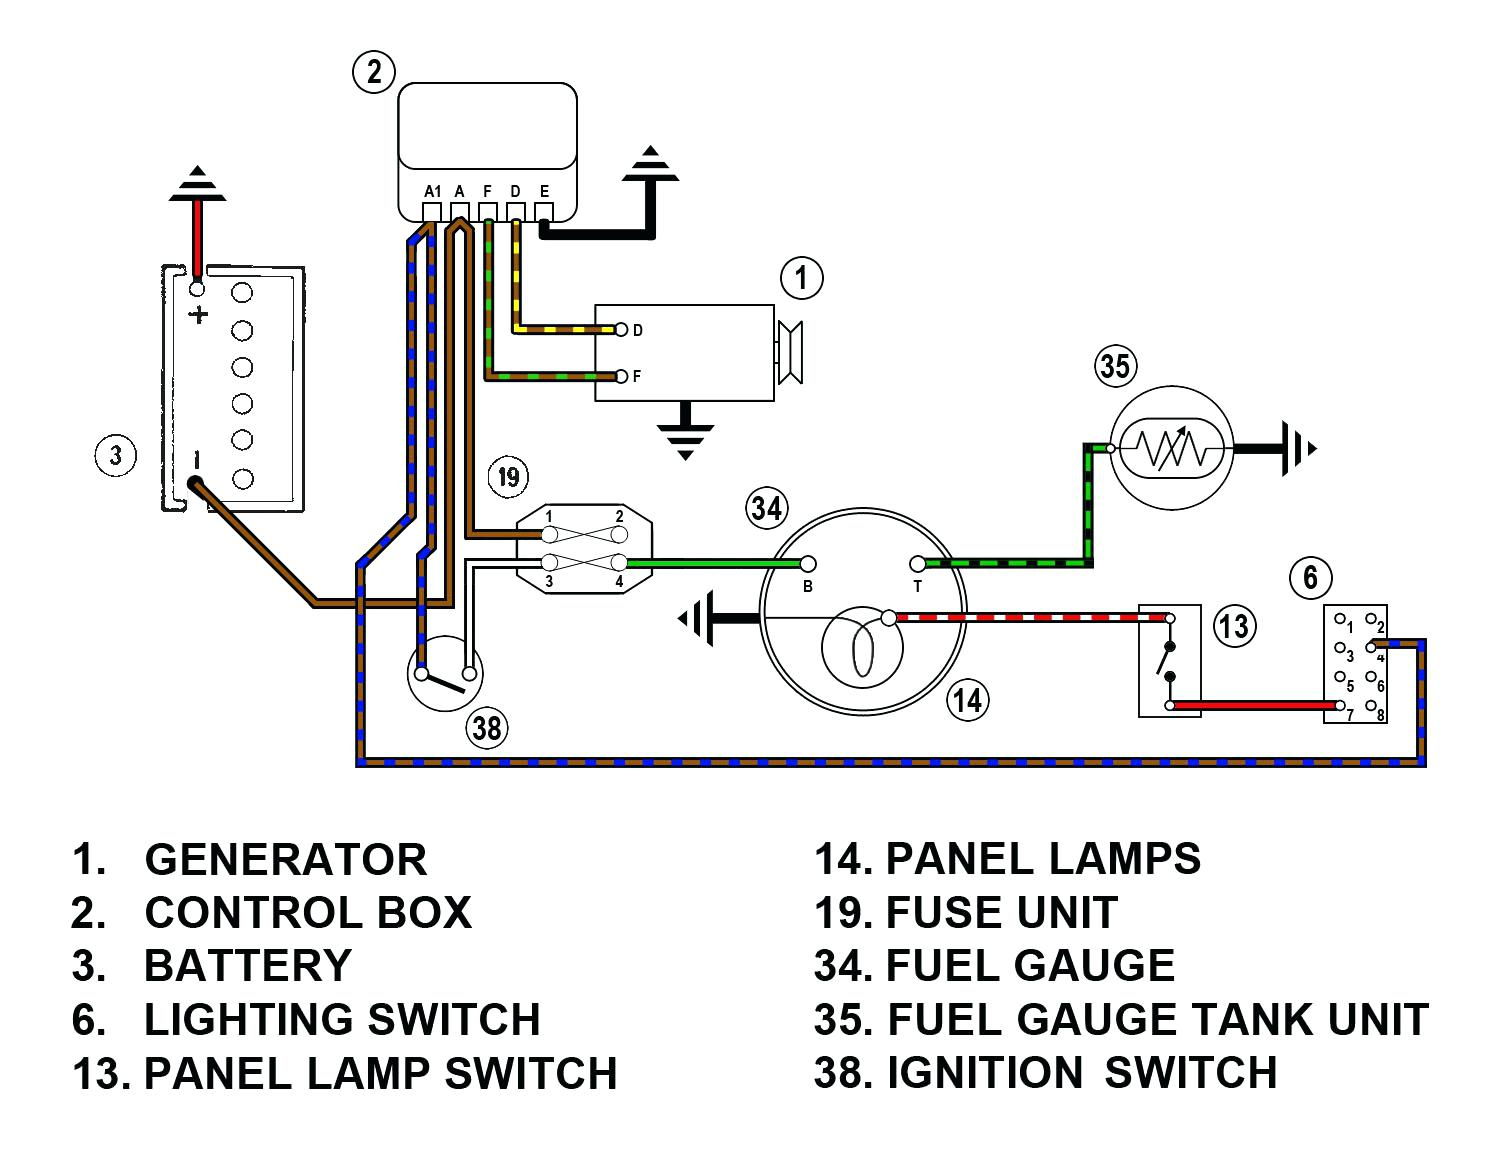 hight resolution of duplex pump control panel wiring diagram download duplex pump control panel wiring diagram inspirational dump